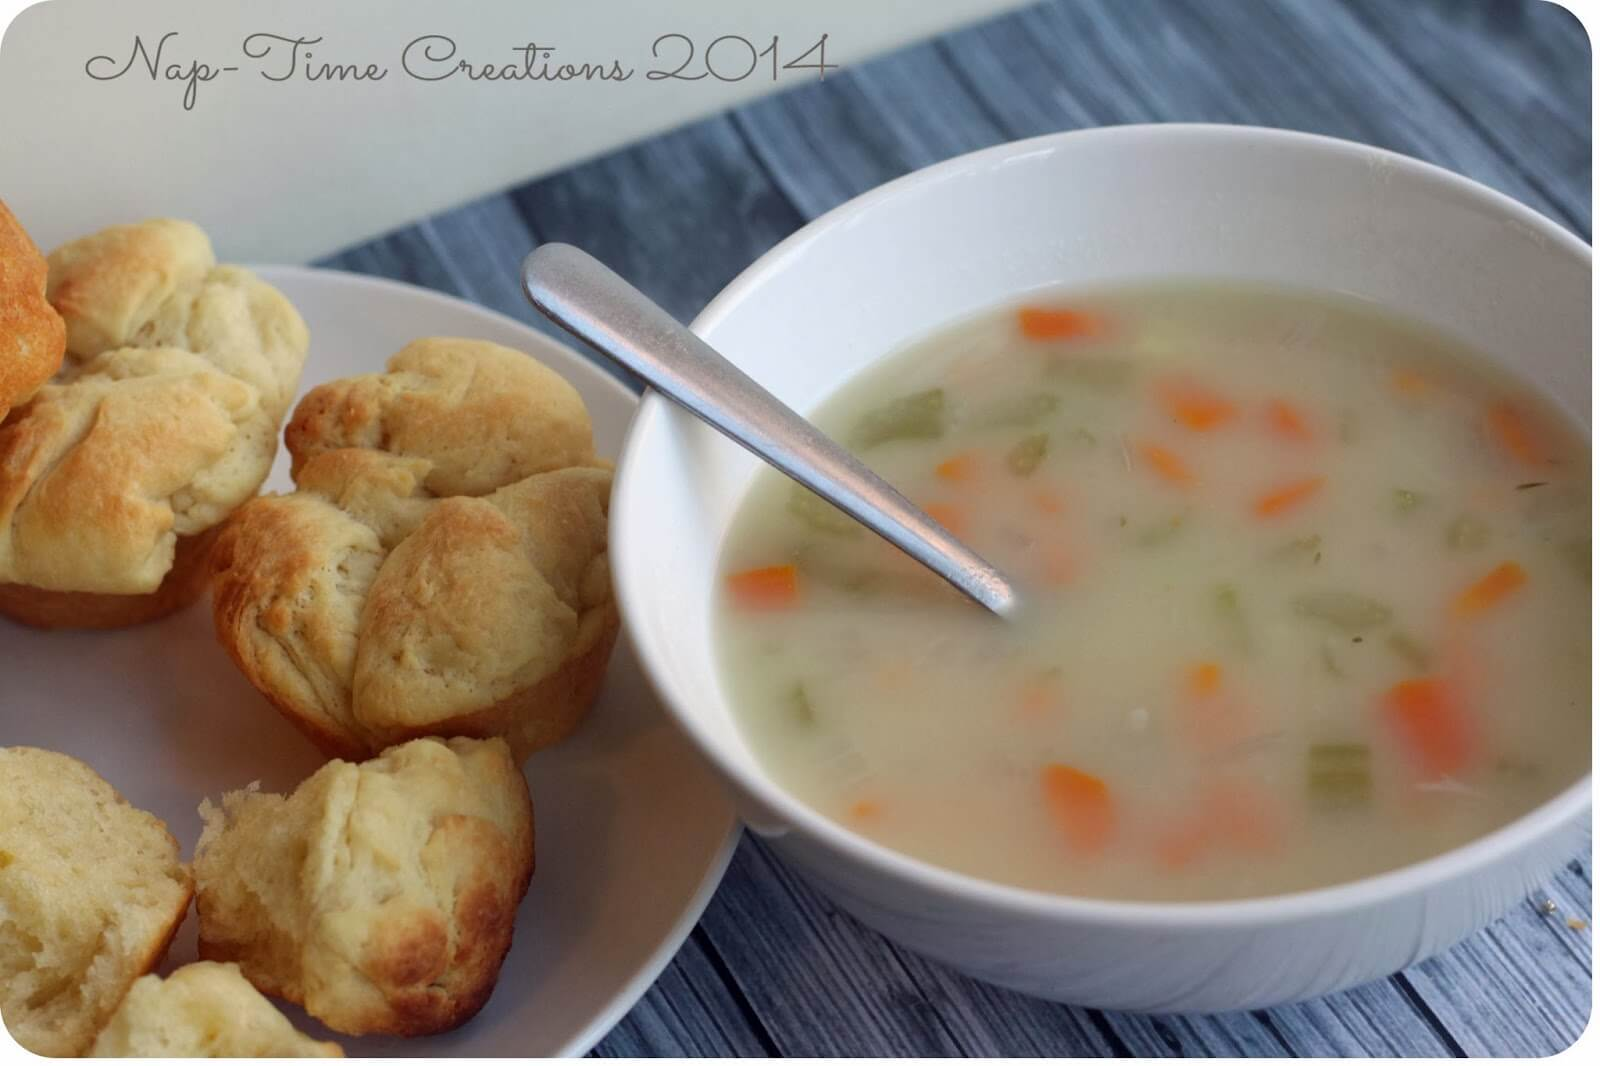 Great I Served This Soup With One Of Our Favorite Bread Recipesu2026 Clover Dinner  Rolls. You Can Find The Recipe Here. Amazing Design